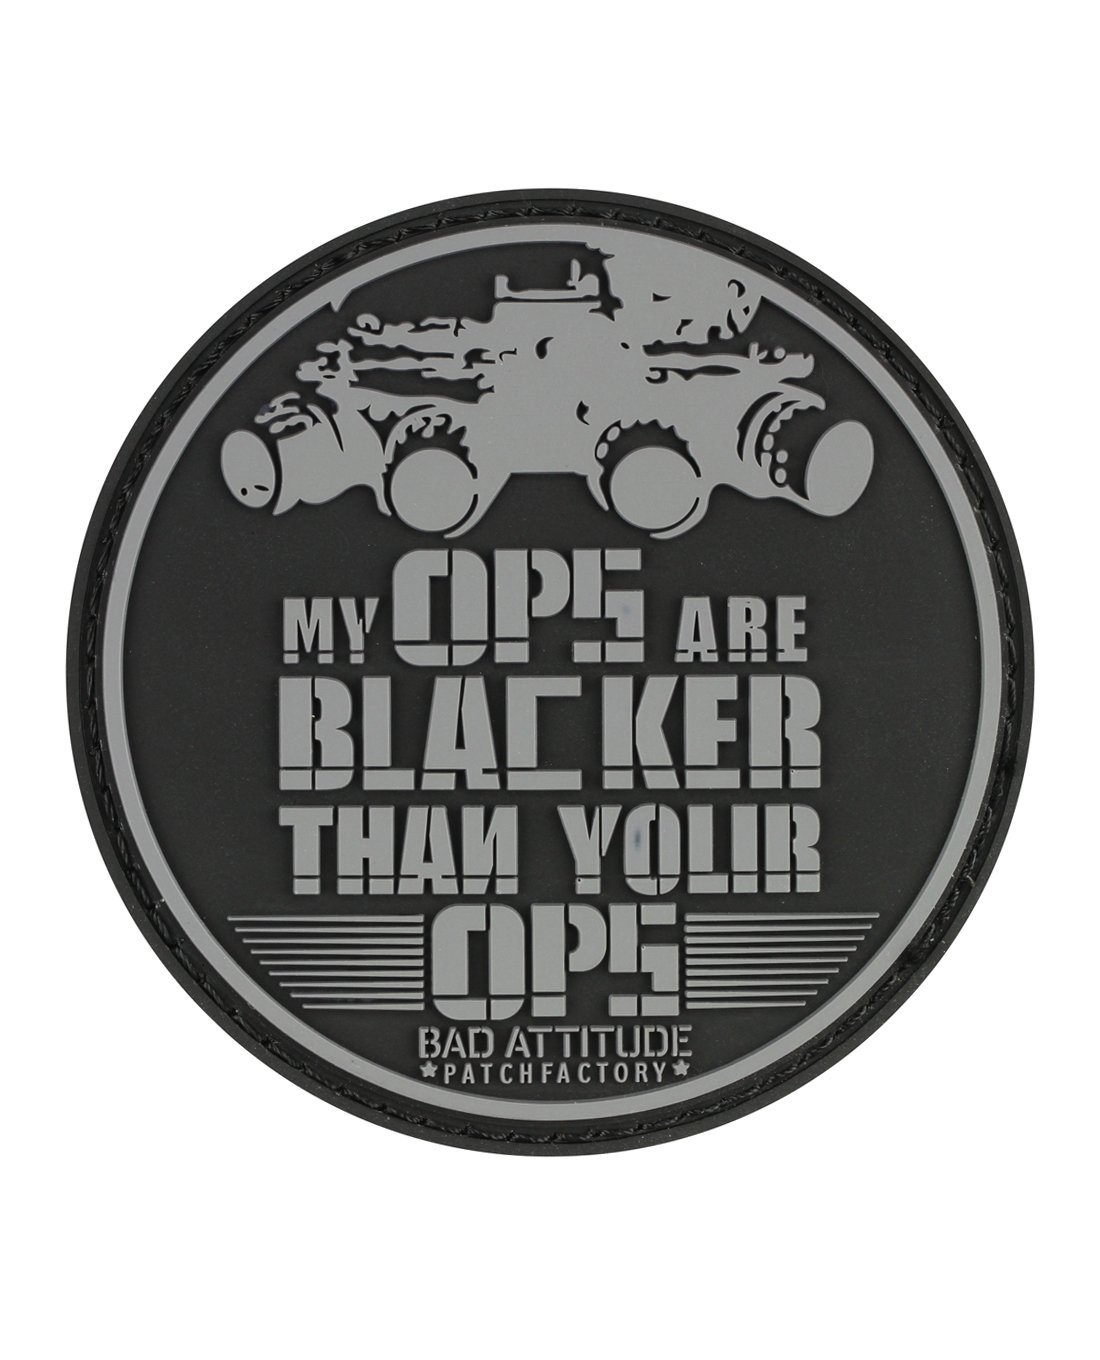 TACWRK My OPS Are Blacker Than Your OPS 3D PCV Rubber Patch mit Klett Bad Attitude Patch Factory DE_TW_S_1363_My_OPS_Are_Blacker_Patch